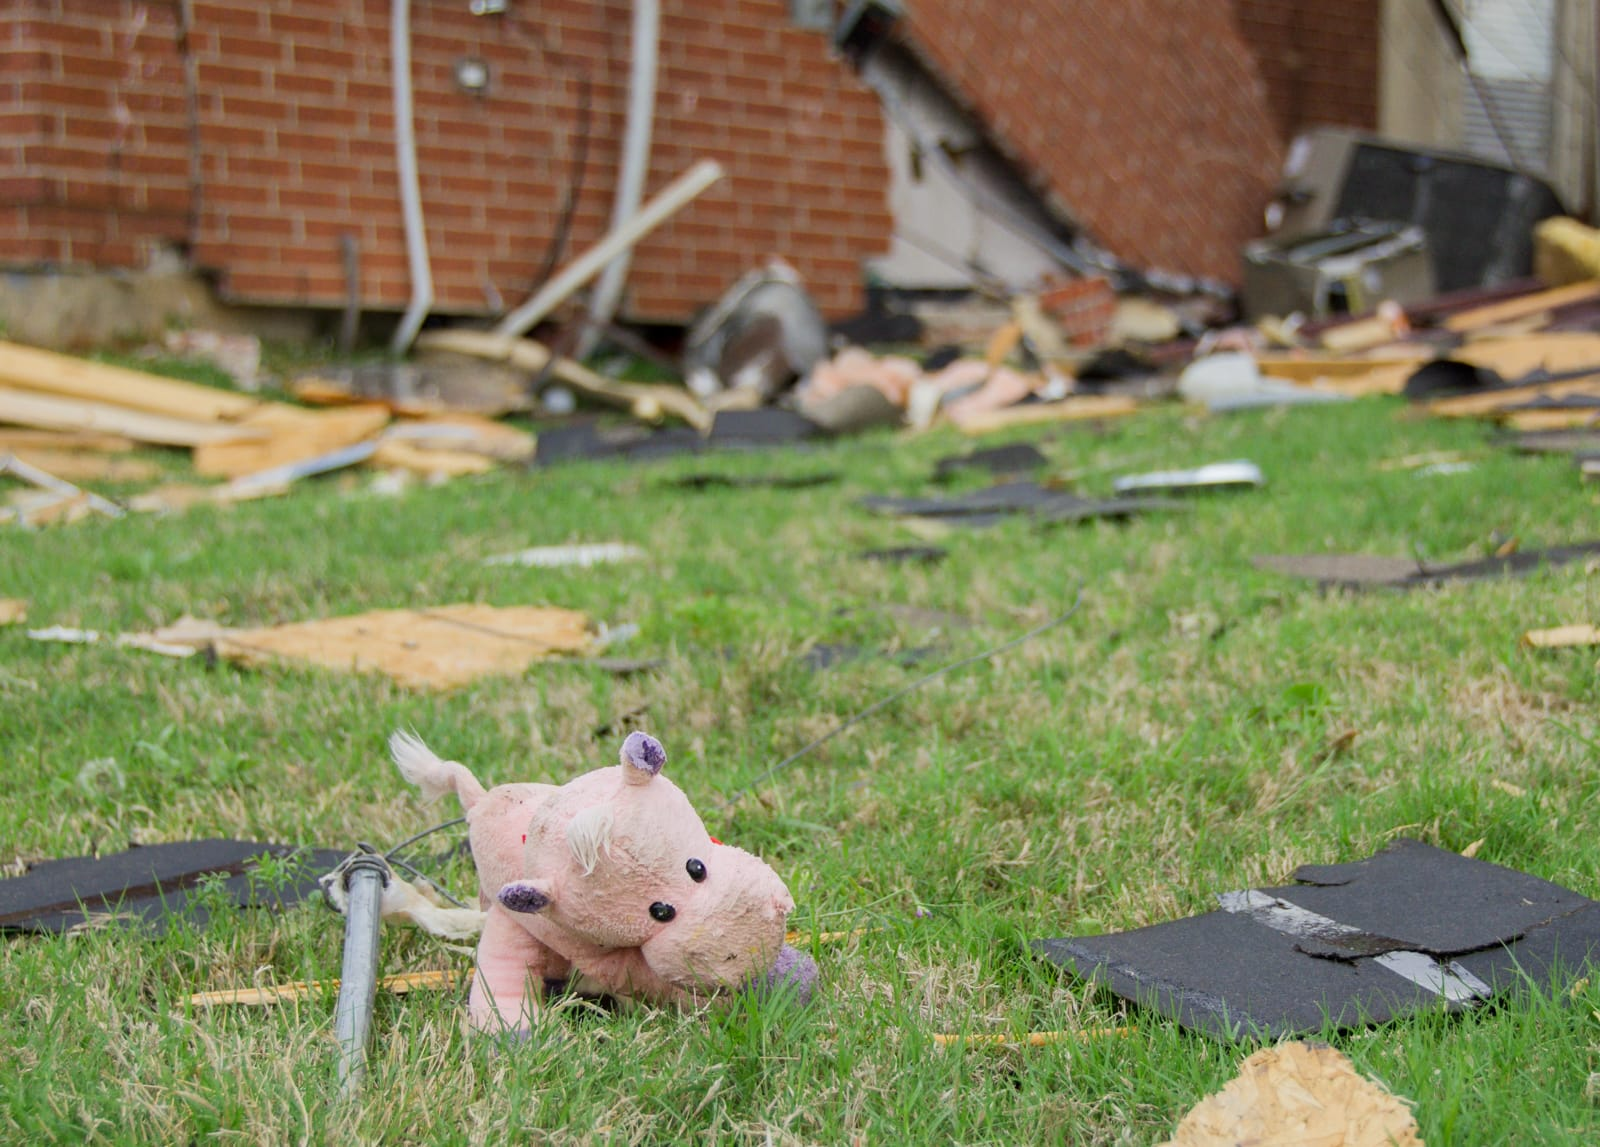 A child's toy thrown by the tornado